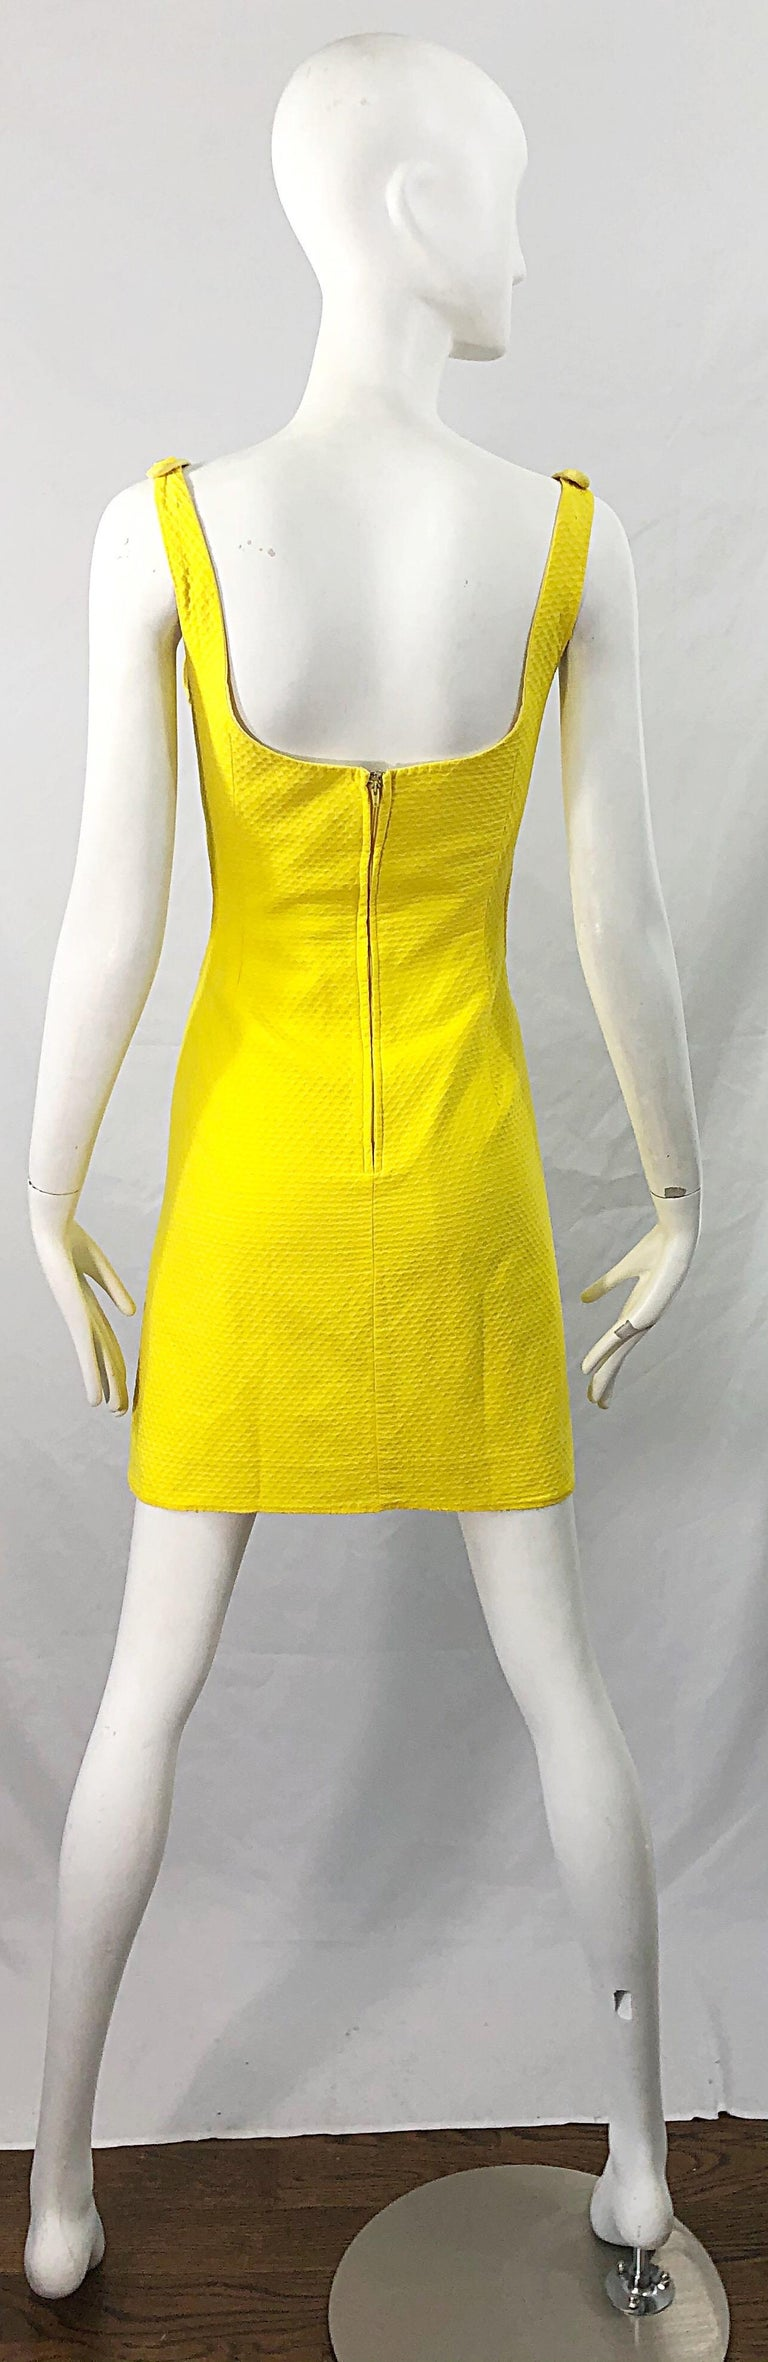 1960s Canary Yellow Cut - Out Honeycomb Cotton Vintage 60s A Line Dress For Sale 5